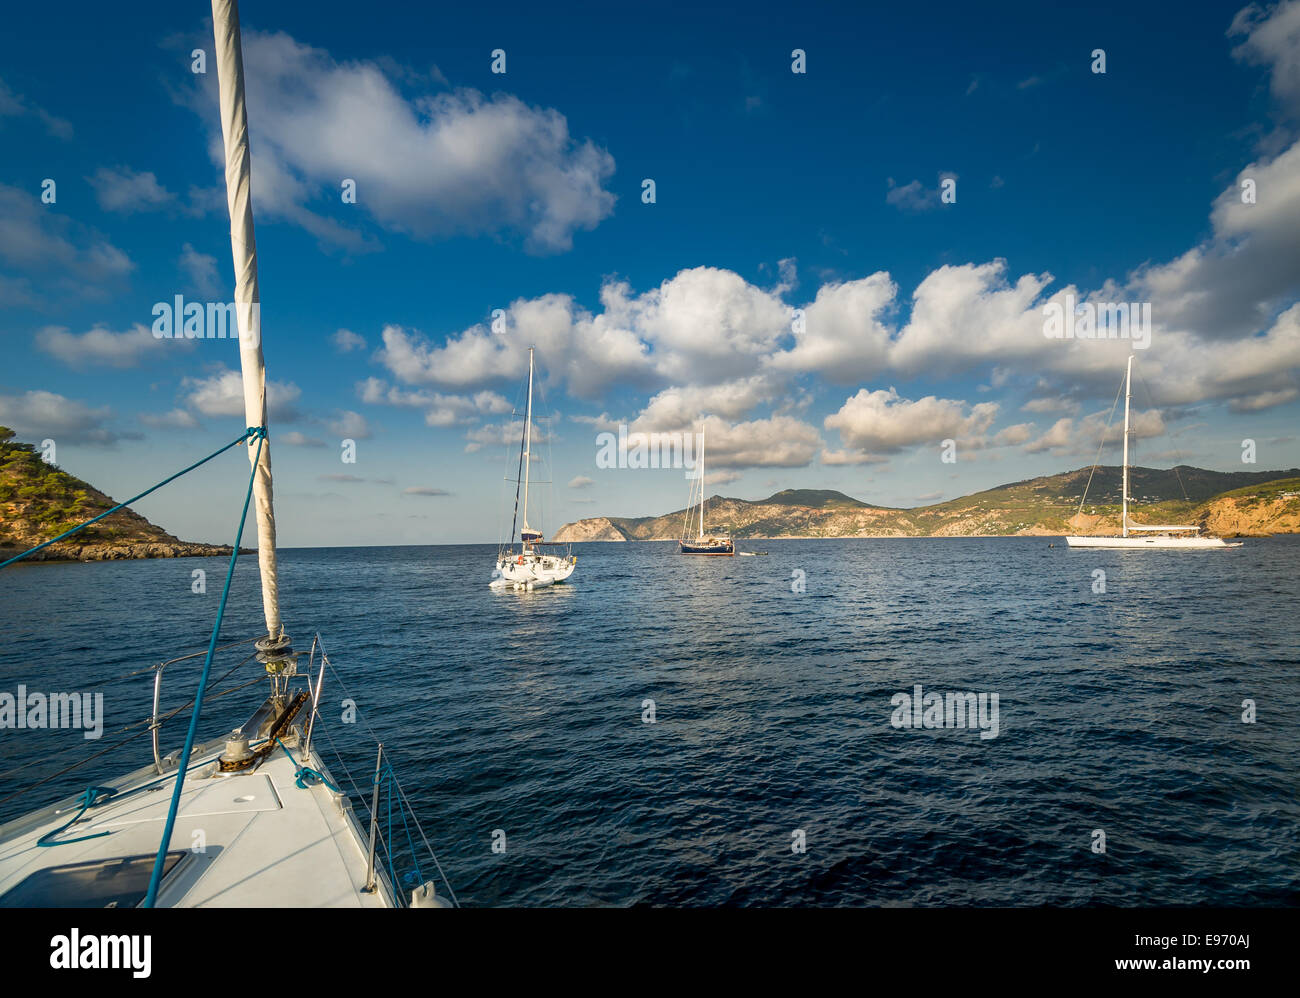 Sailing yachts anchorage - Stock Image